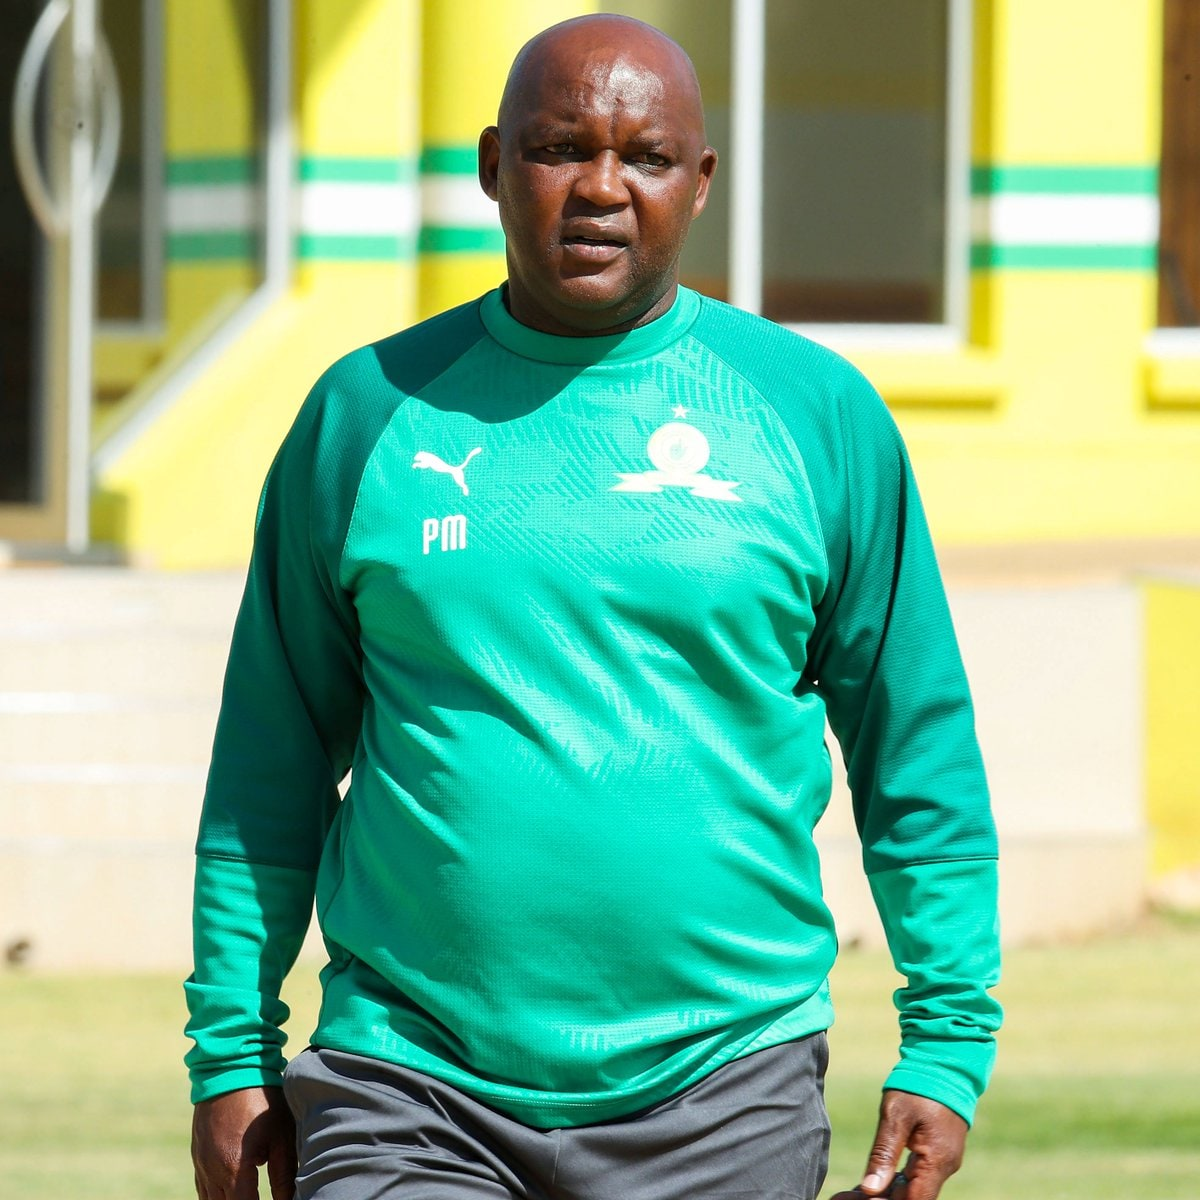 Pitso Mosimane escorted by police after trying to cause drama